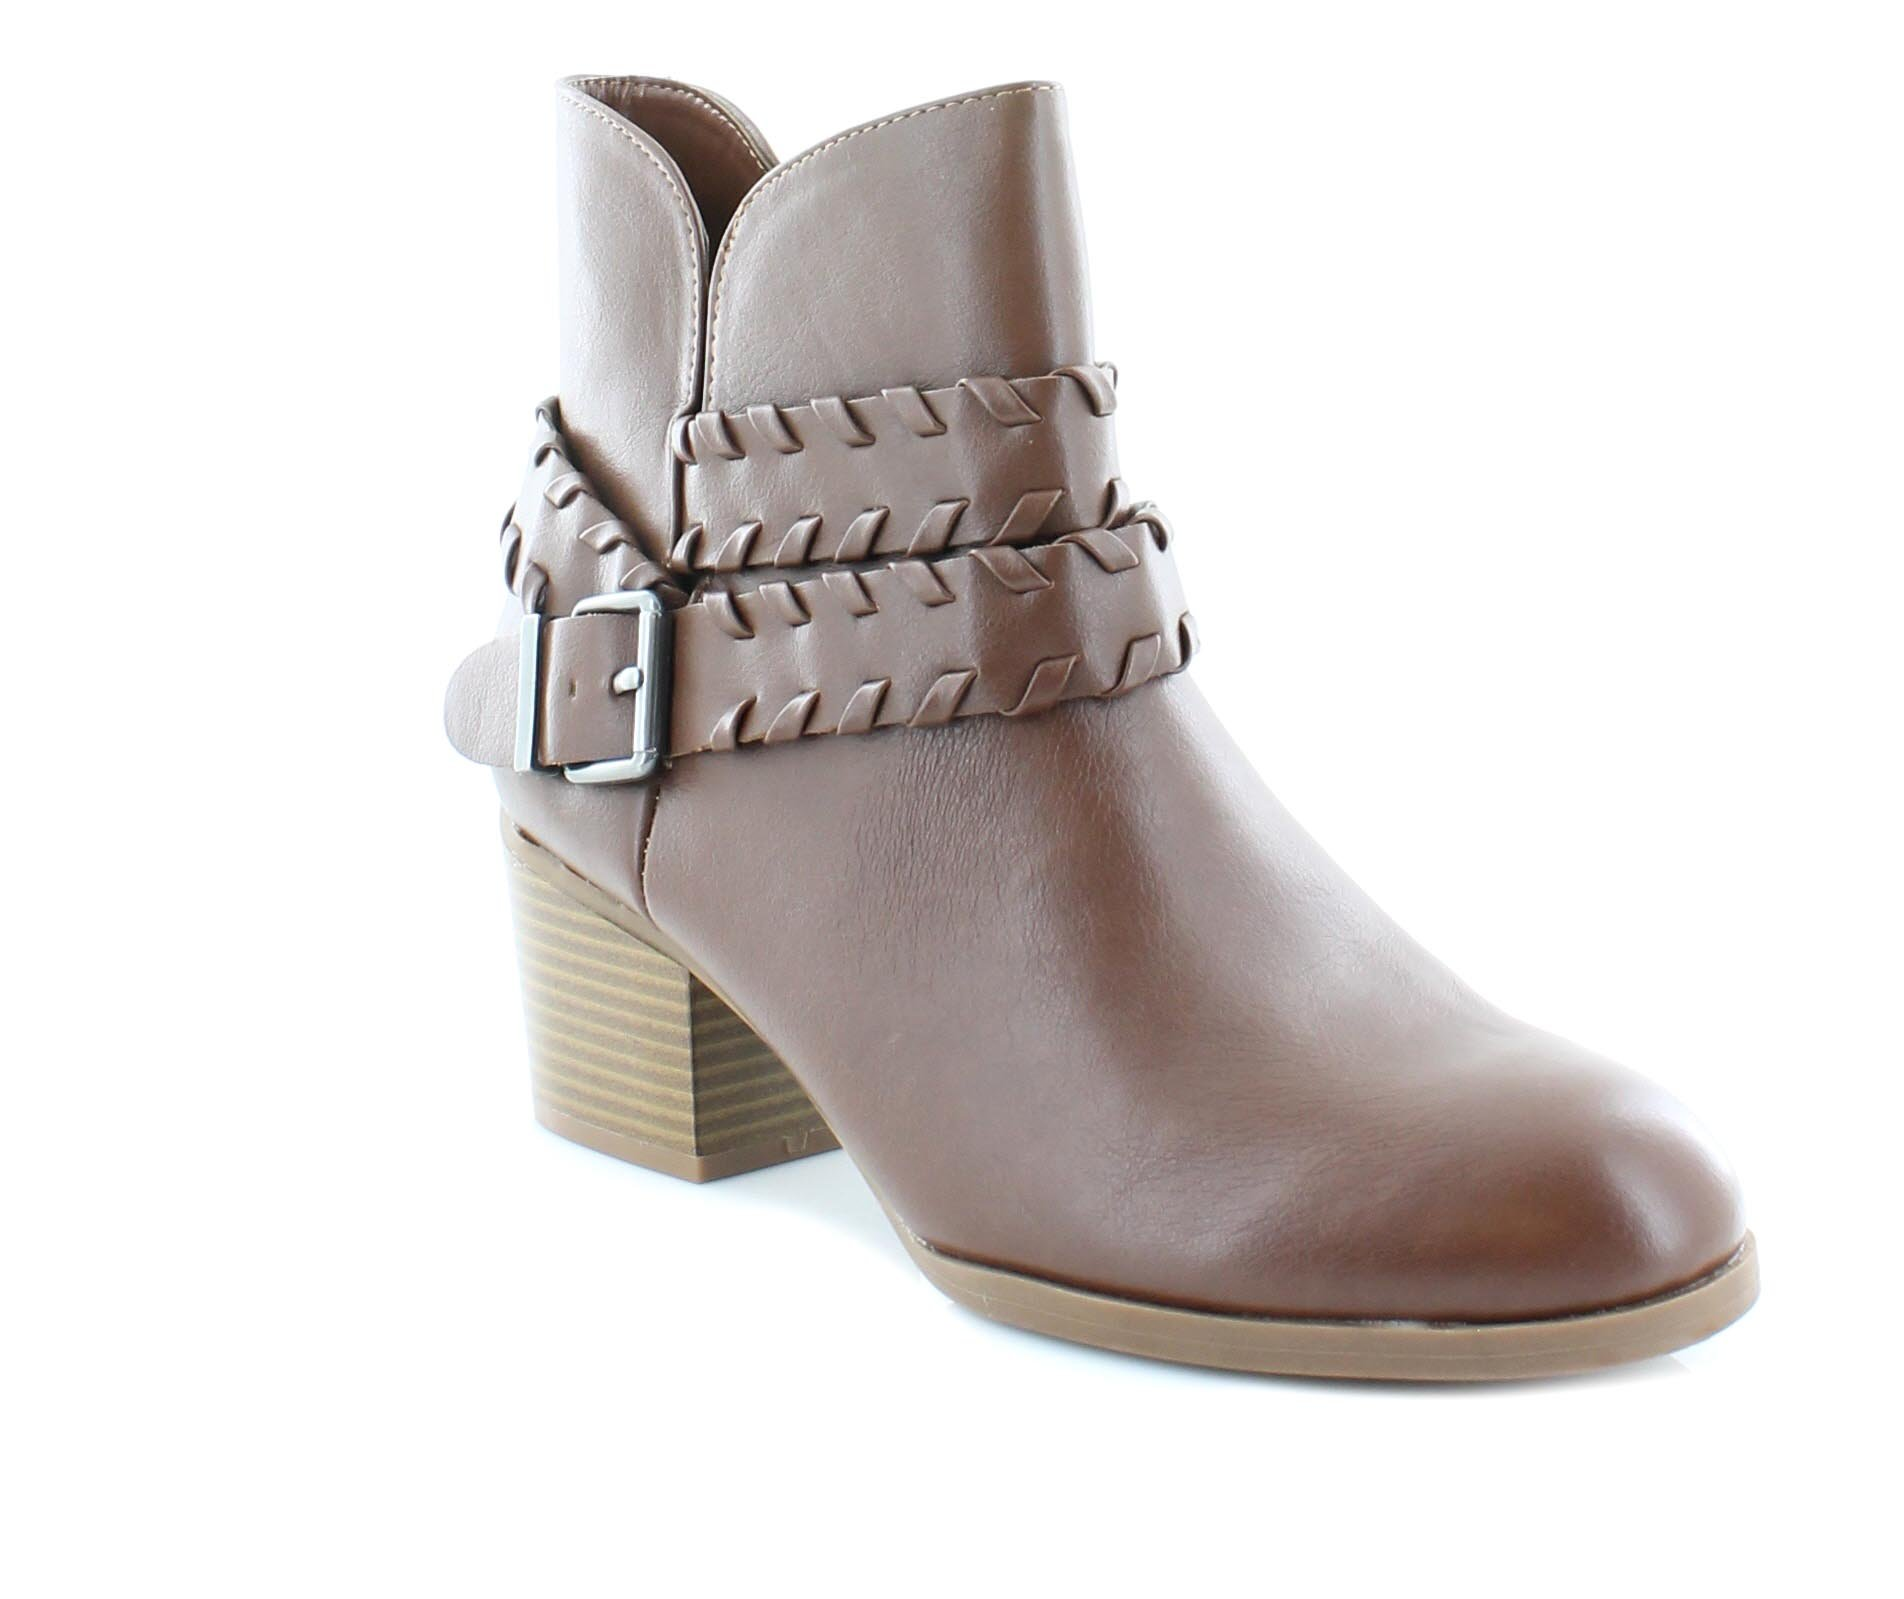 Style & Co. Womens Dyanaa Closed Toe Ankle Fashion Boots, Barrel, Size 9.0